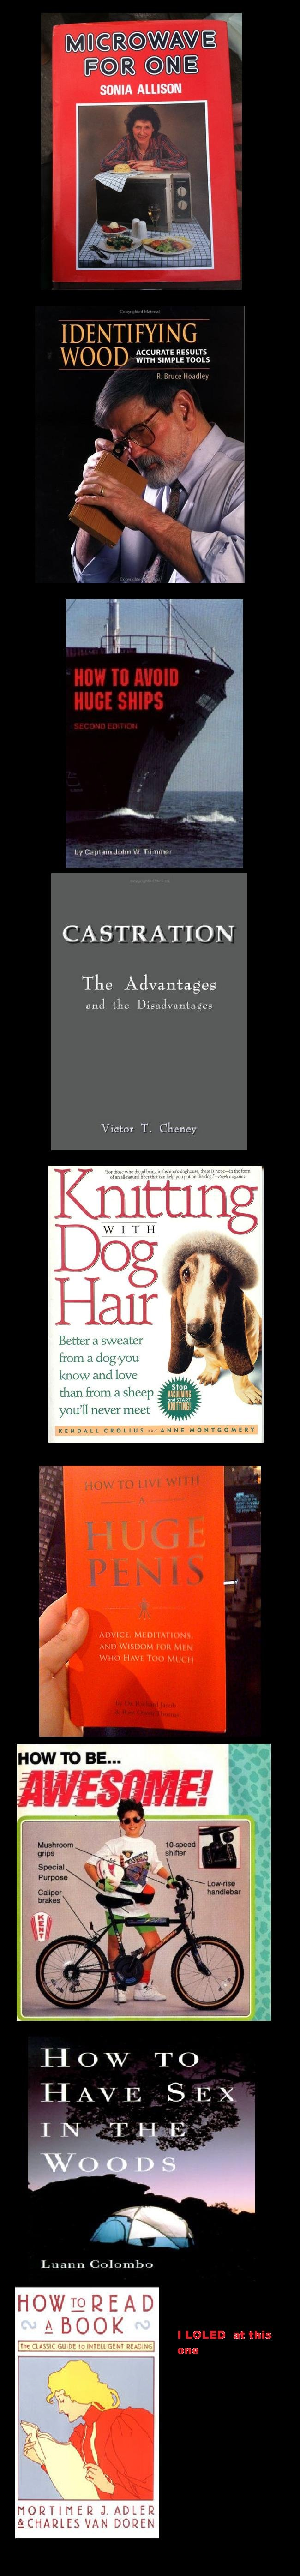 """The most useless books evar. . SONIA ALLISON I DENT! FYI N G CASTRATION The and the Disadvantages Victor T. Cheney Better a sum """" a dog you know and love '"""" tha"""